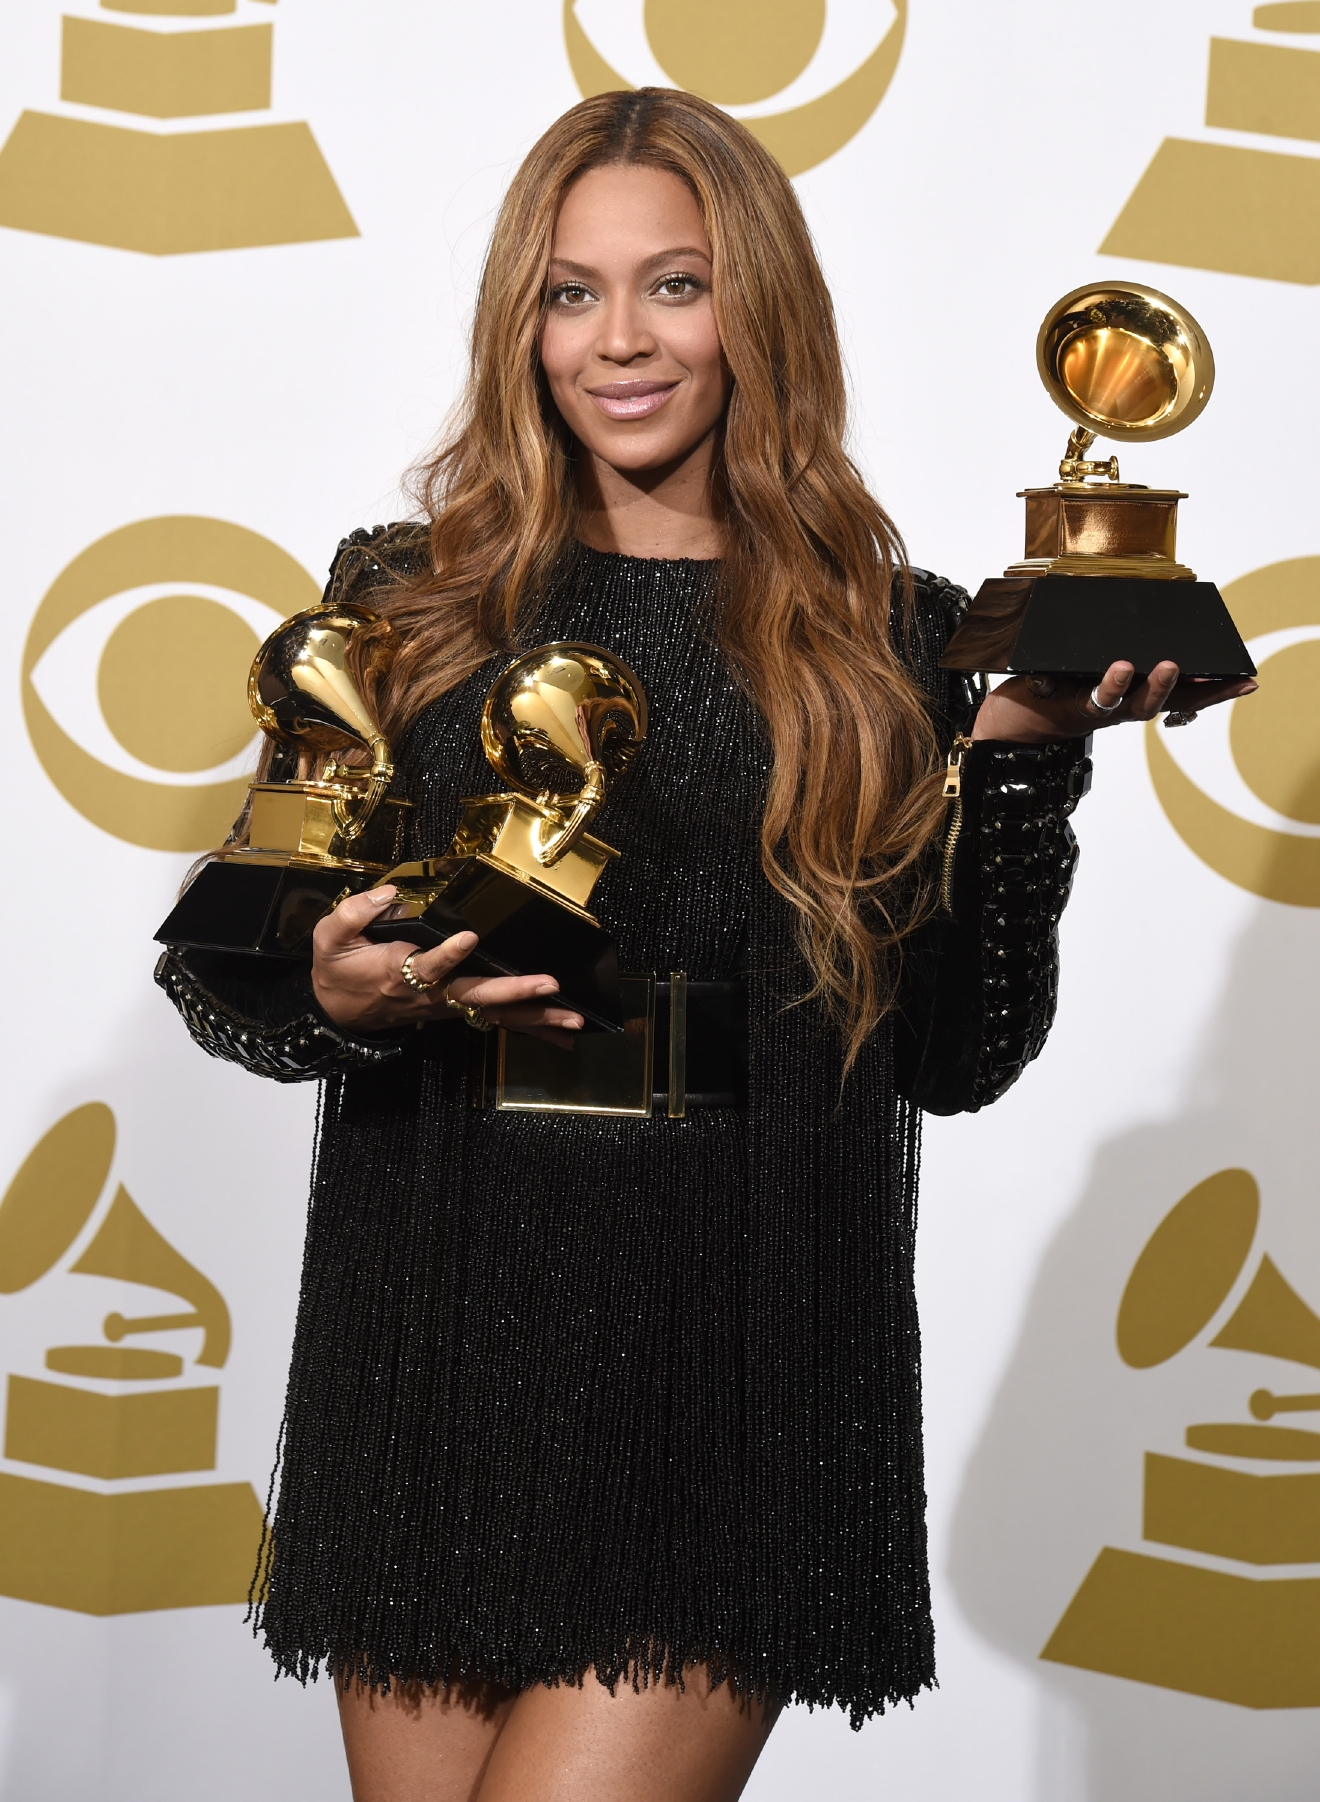 Beyoncé poses with three of her trophies in the press room of the Grammy Awards ceremony in Los Angeles on Feb. 8, 2015. (Photo credit: Chris Pizzello/Invision/AP.)